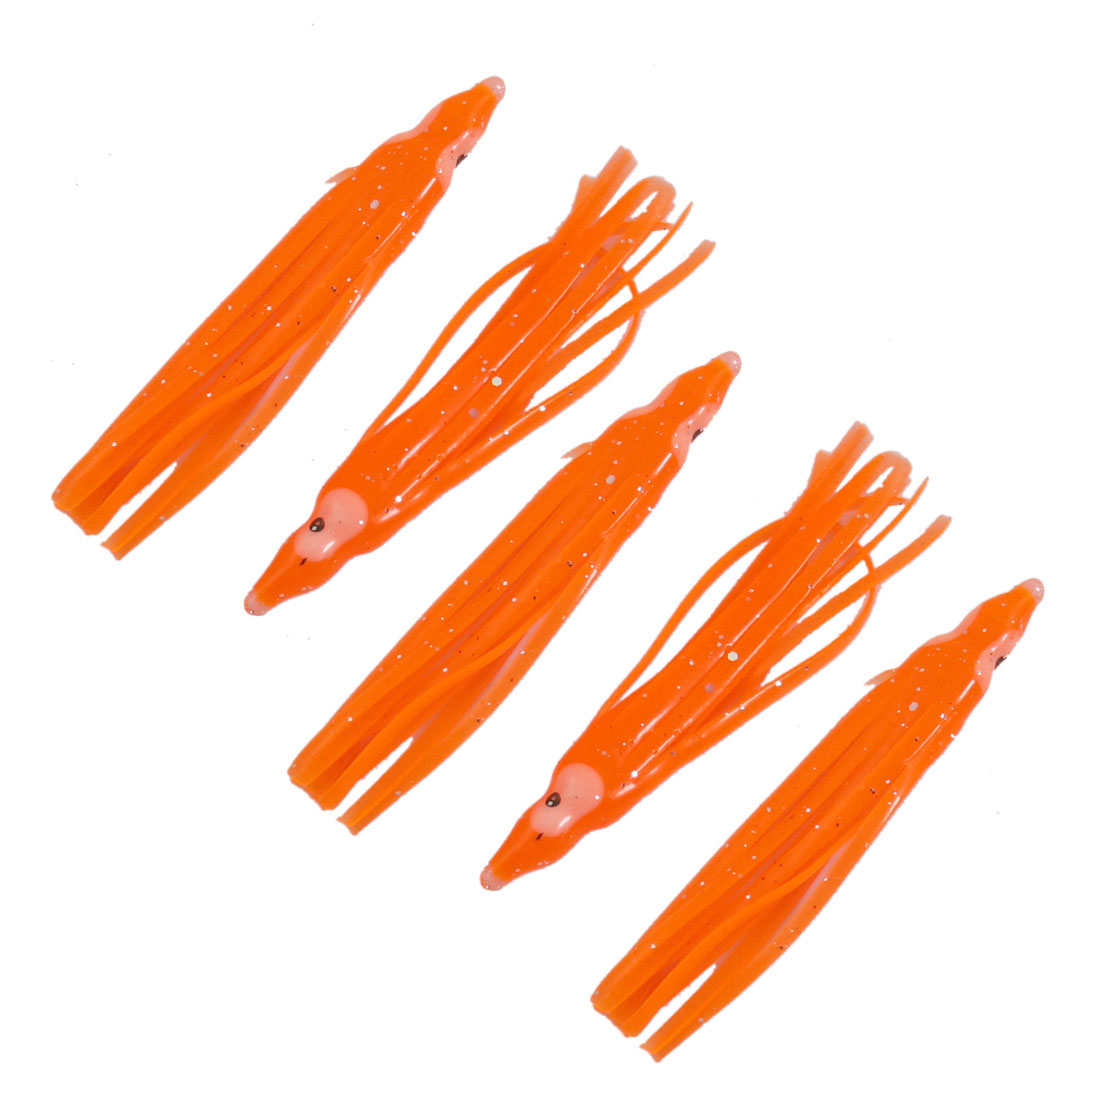 "Saltwater Orange Plastic 2.8"" Length Octopus Squid Rig Skirt Lure 5 Pcs"